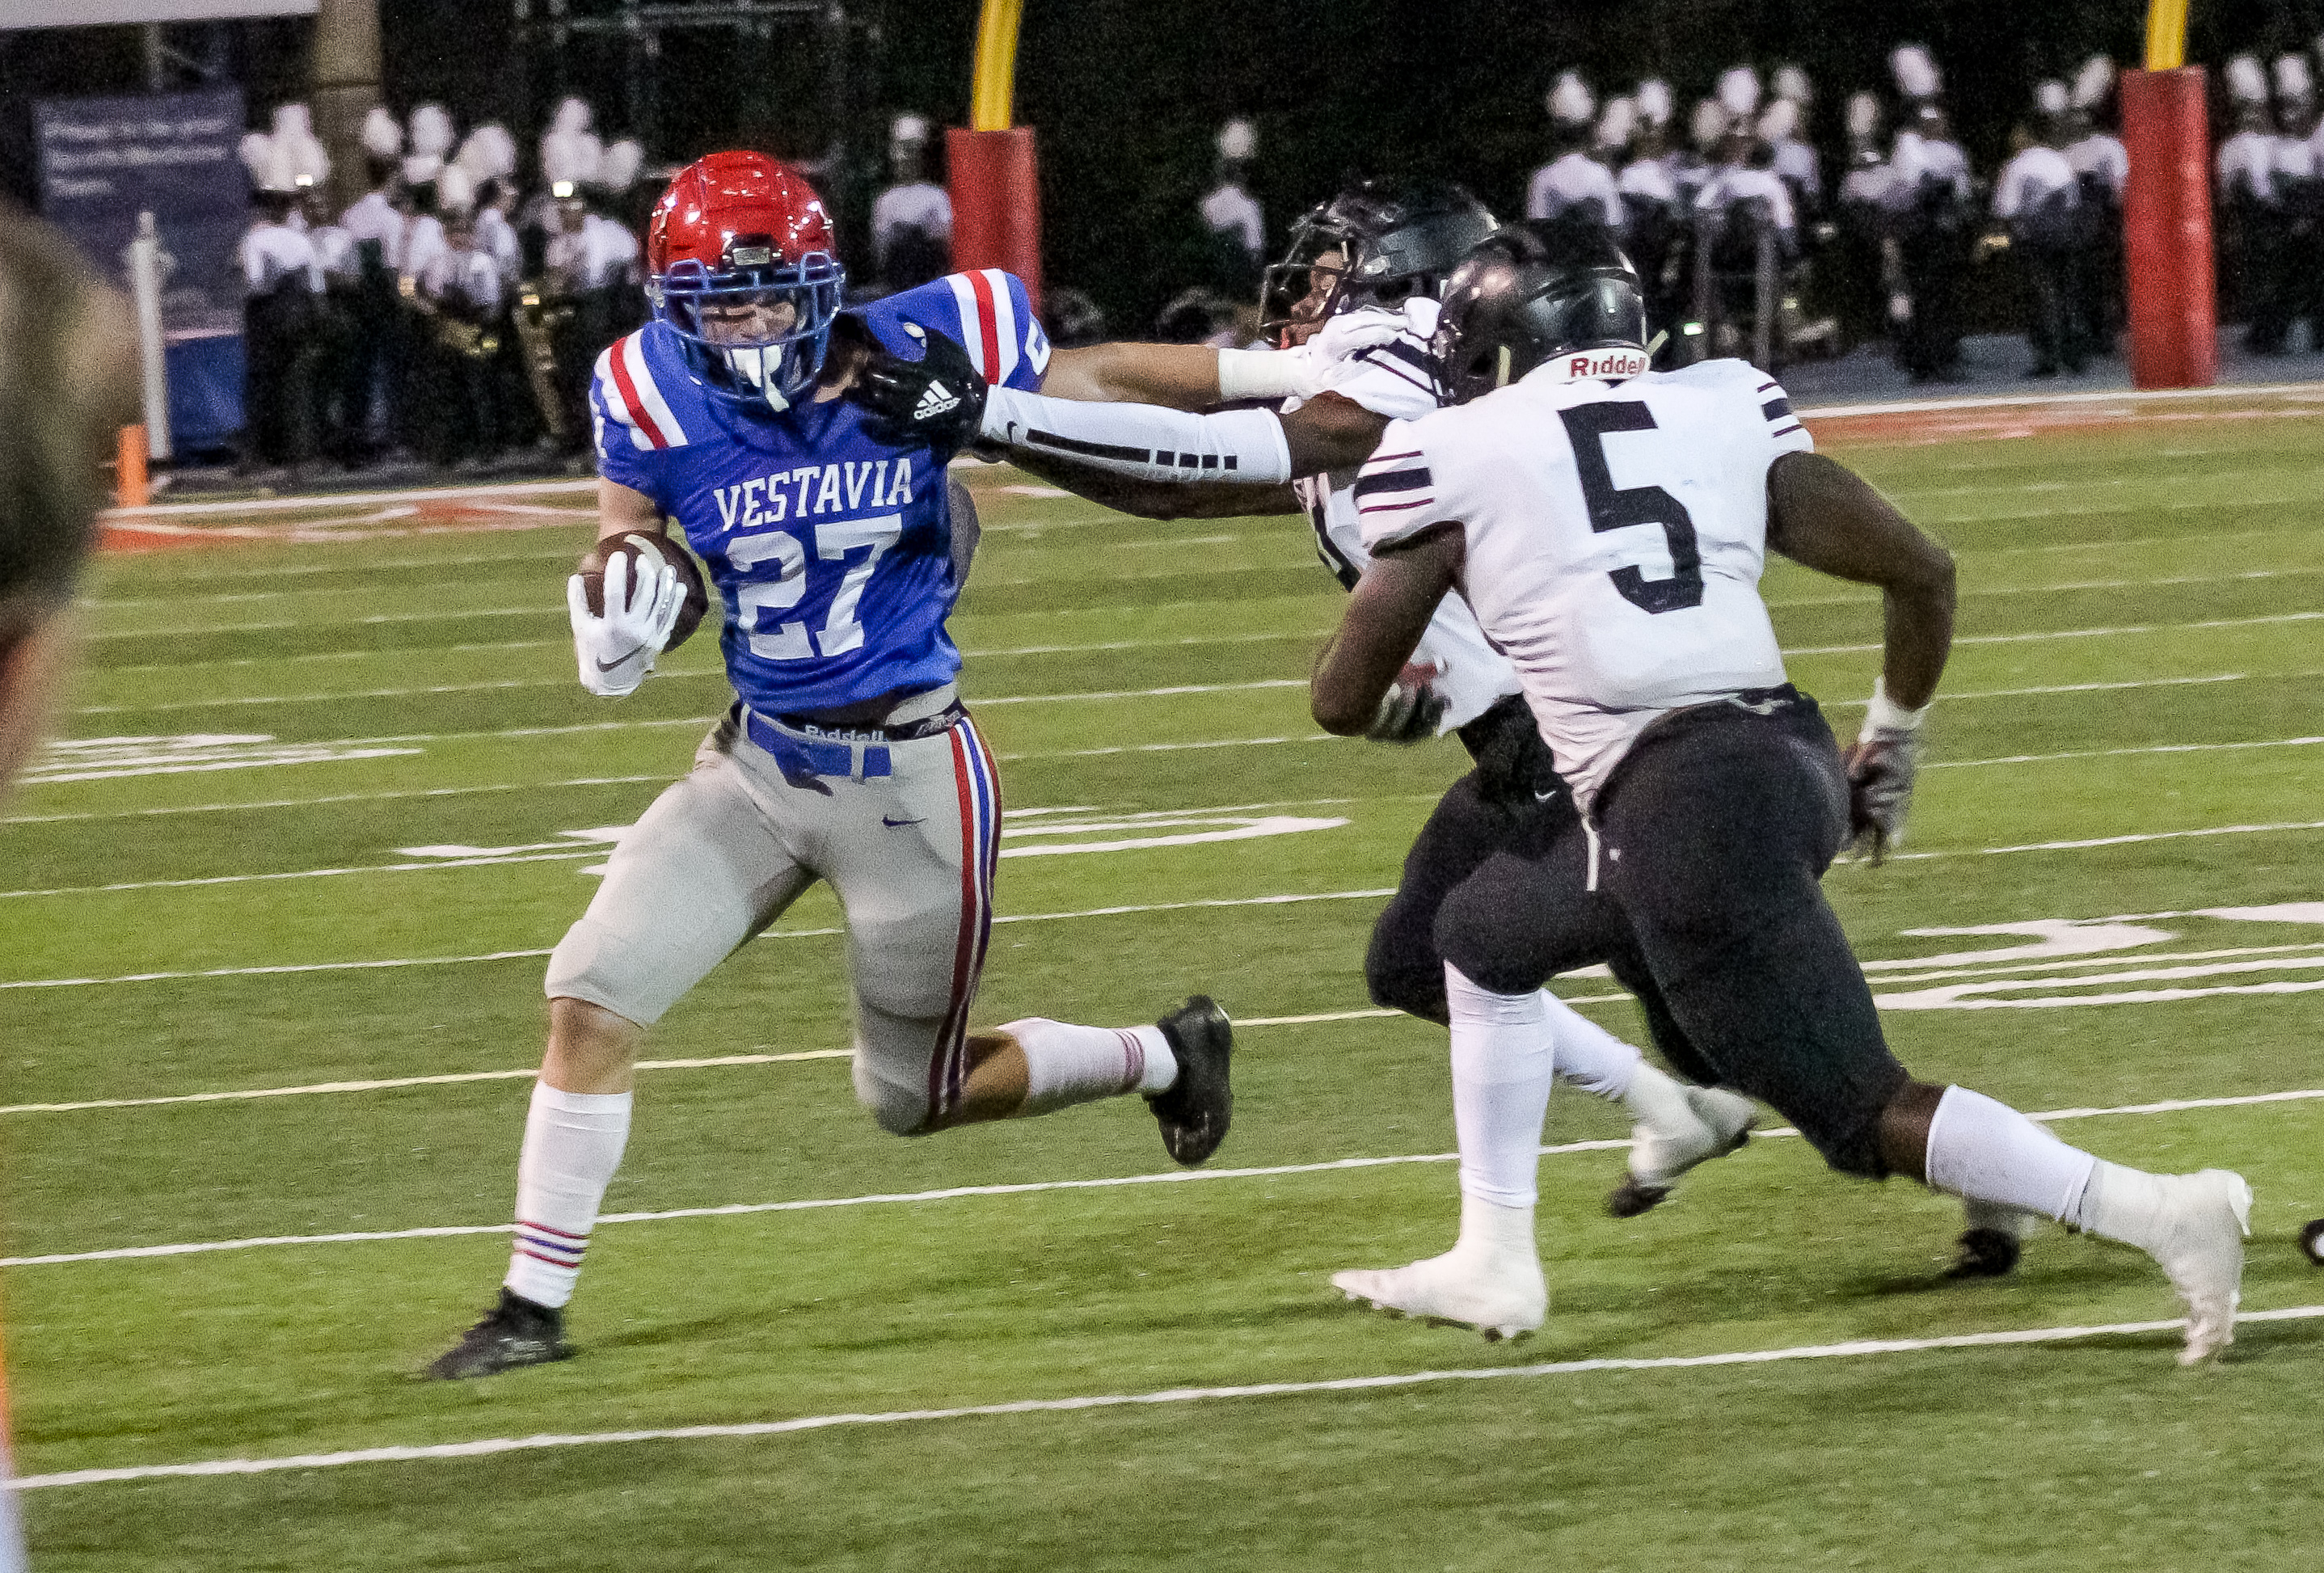 Vestavia Hills blanks Shades Valley 17-0